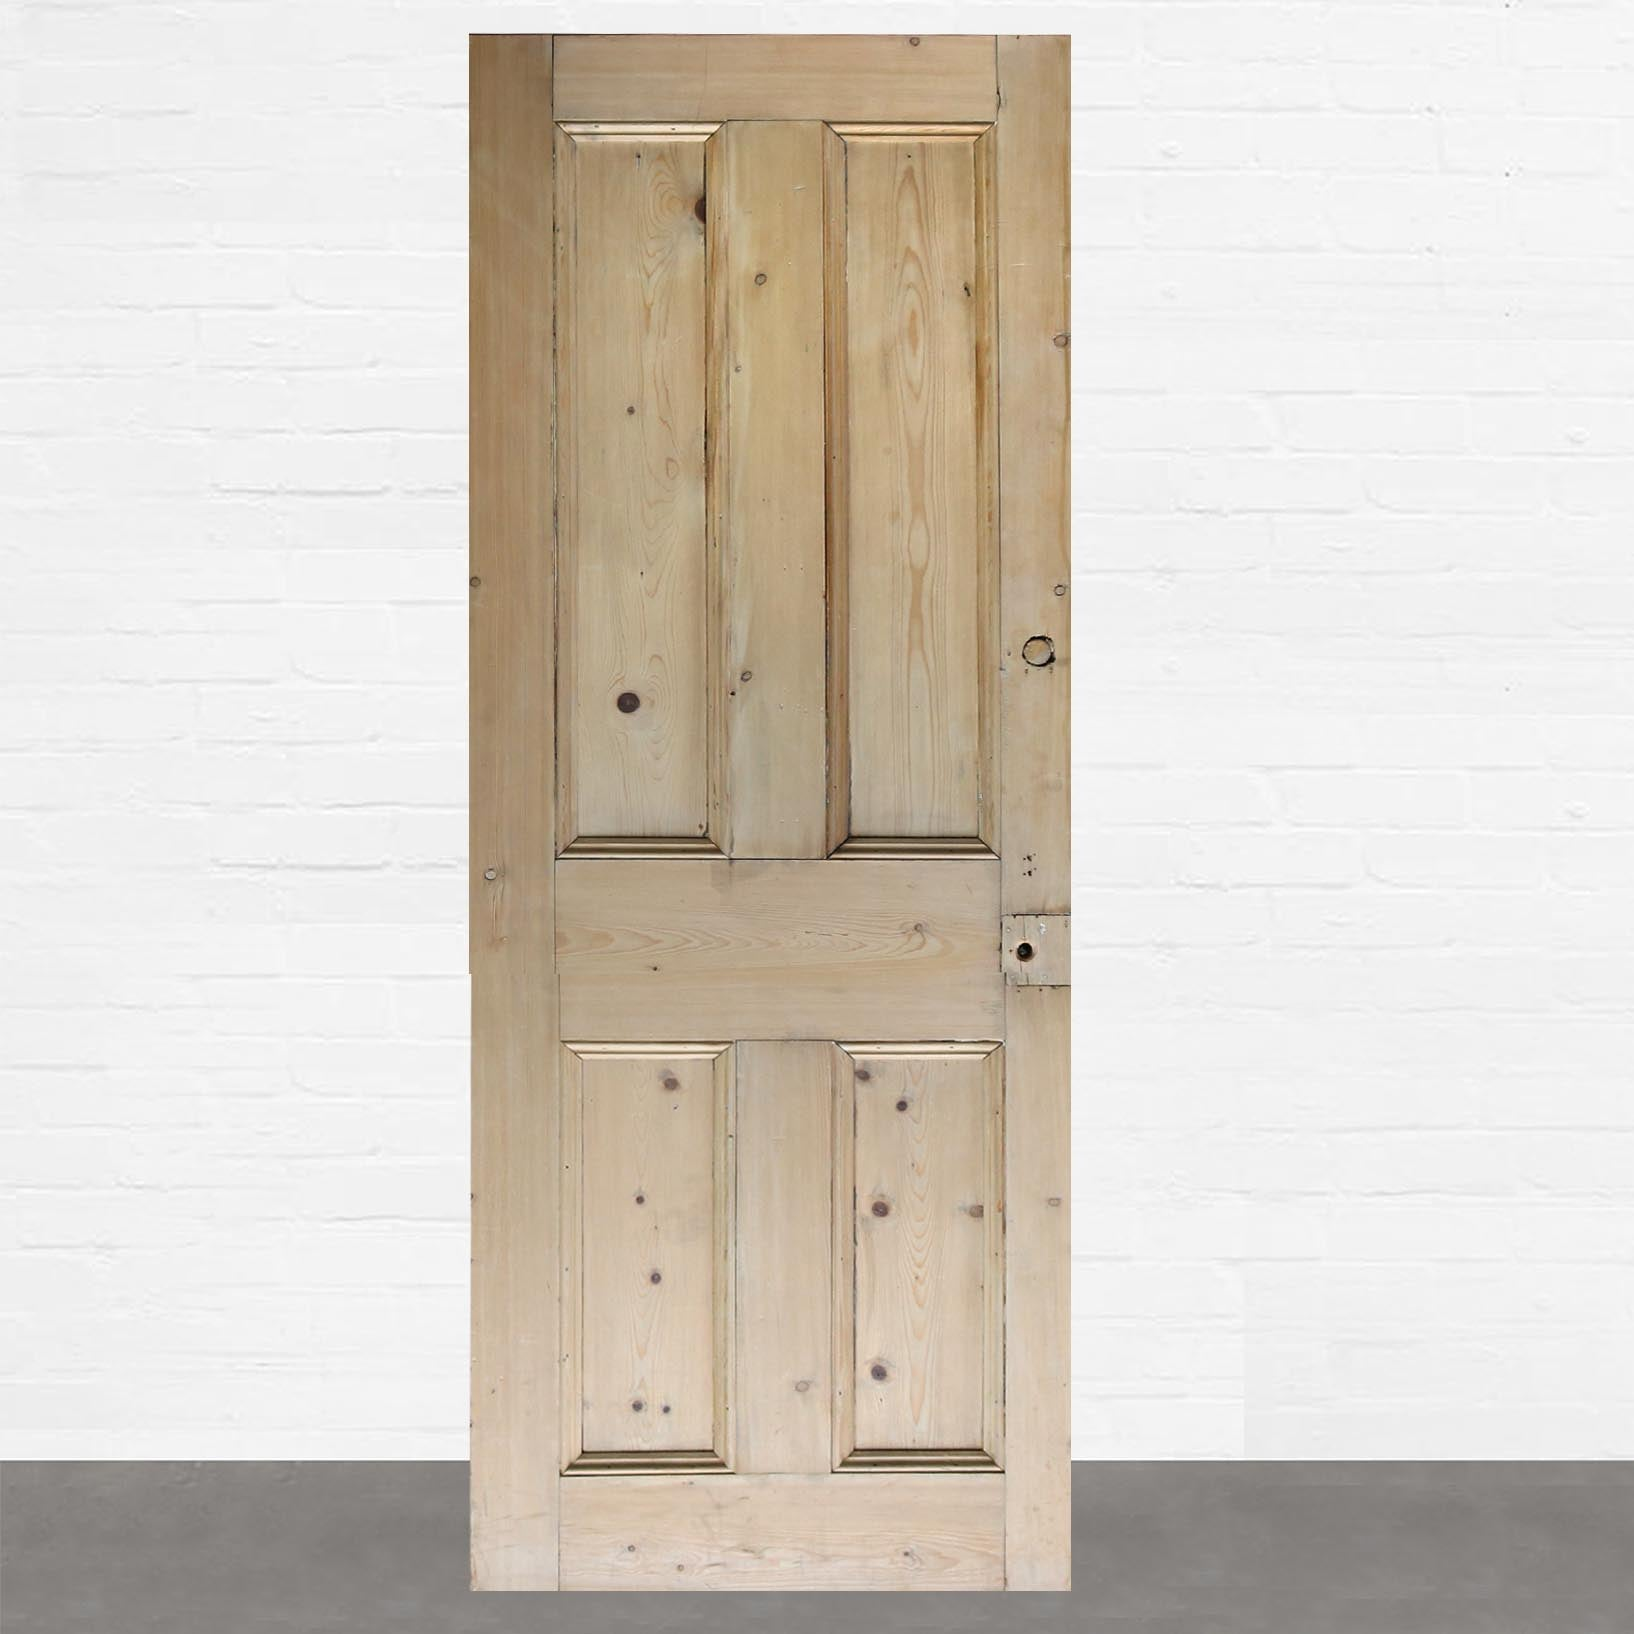 Reclaimed Solid Pine Door Stripped - 186.5cm x 67.5cm - architectural-forum